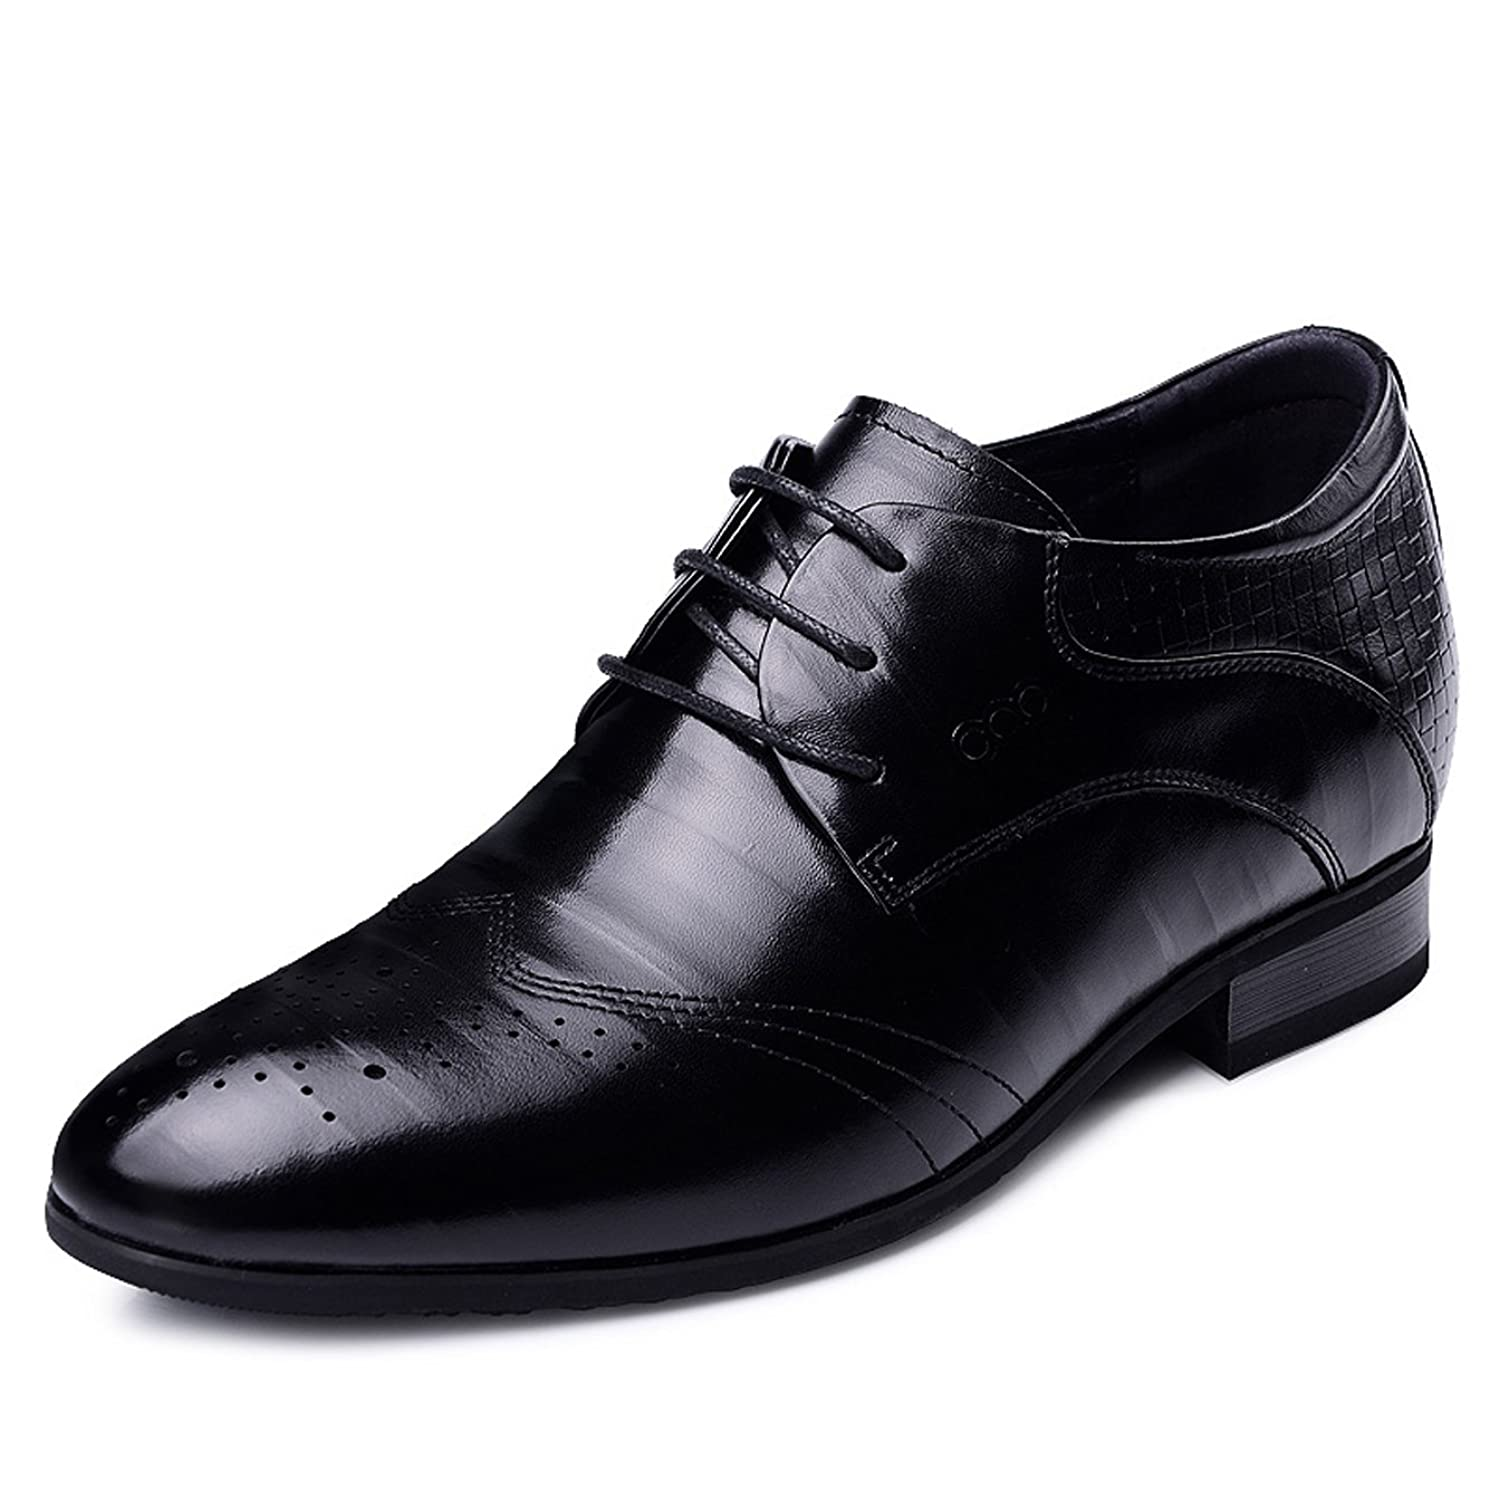 2.36 Inches Taller - Height Increasing Elevator Shoes (Black Business Dress Shoes)